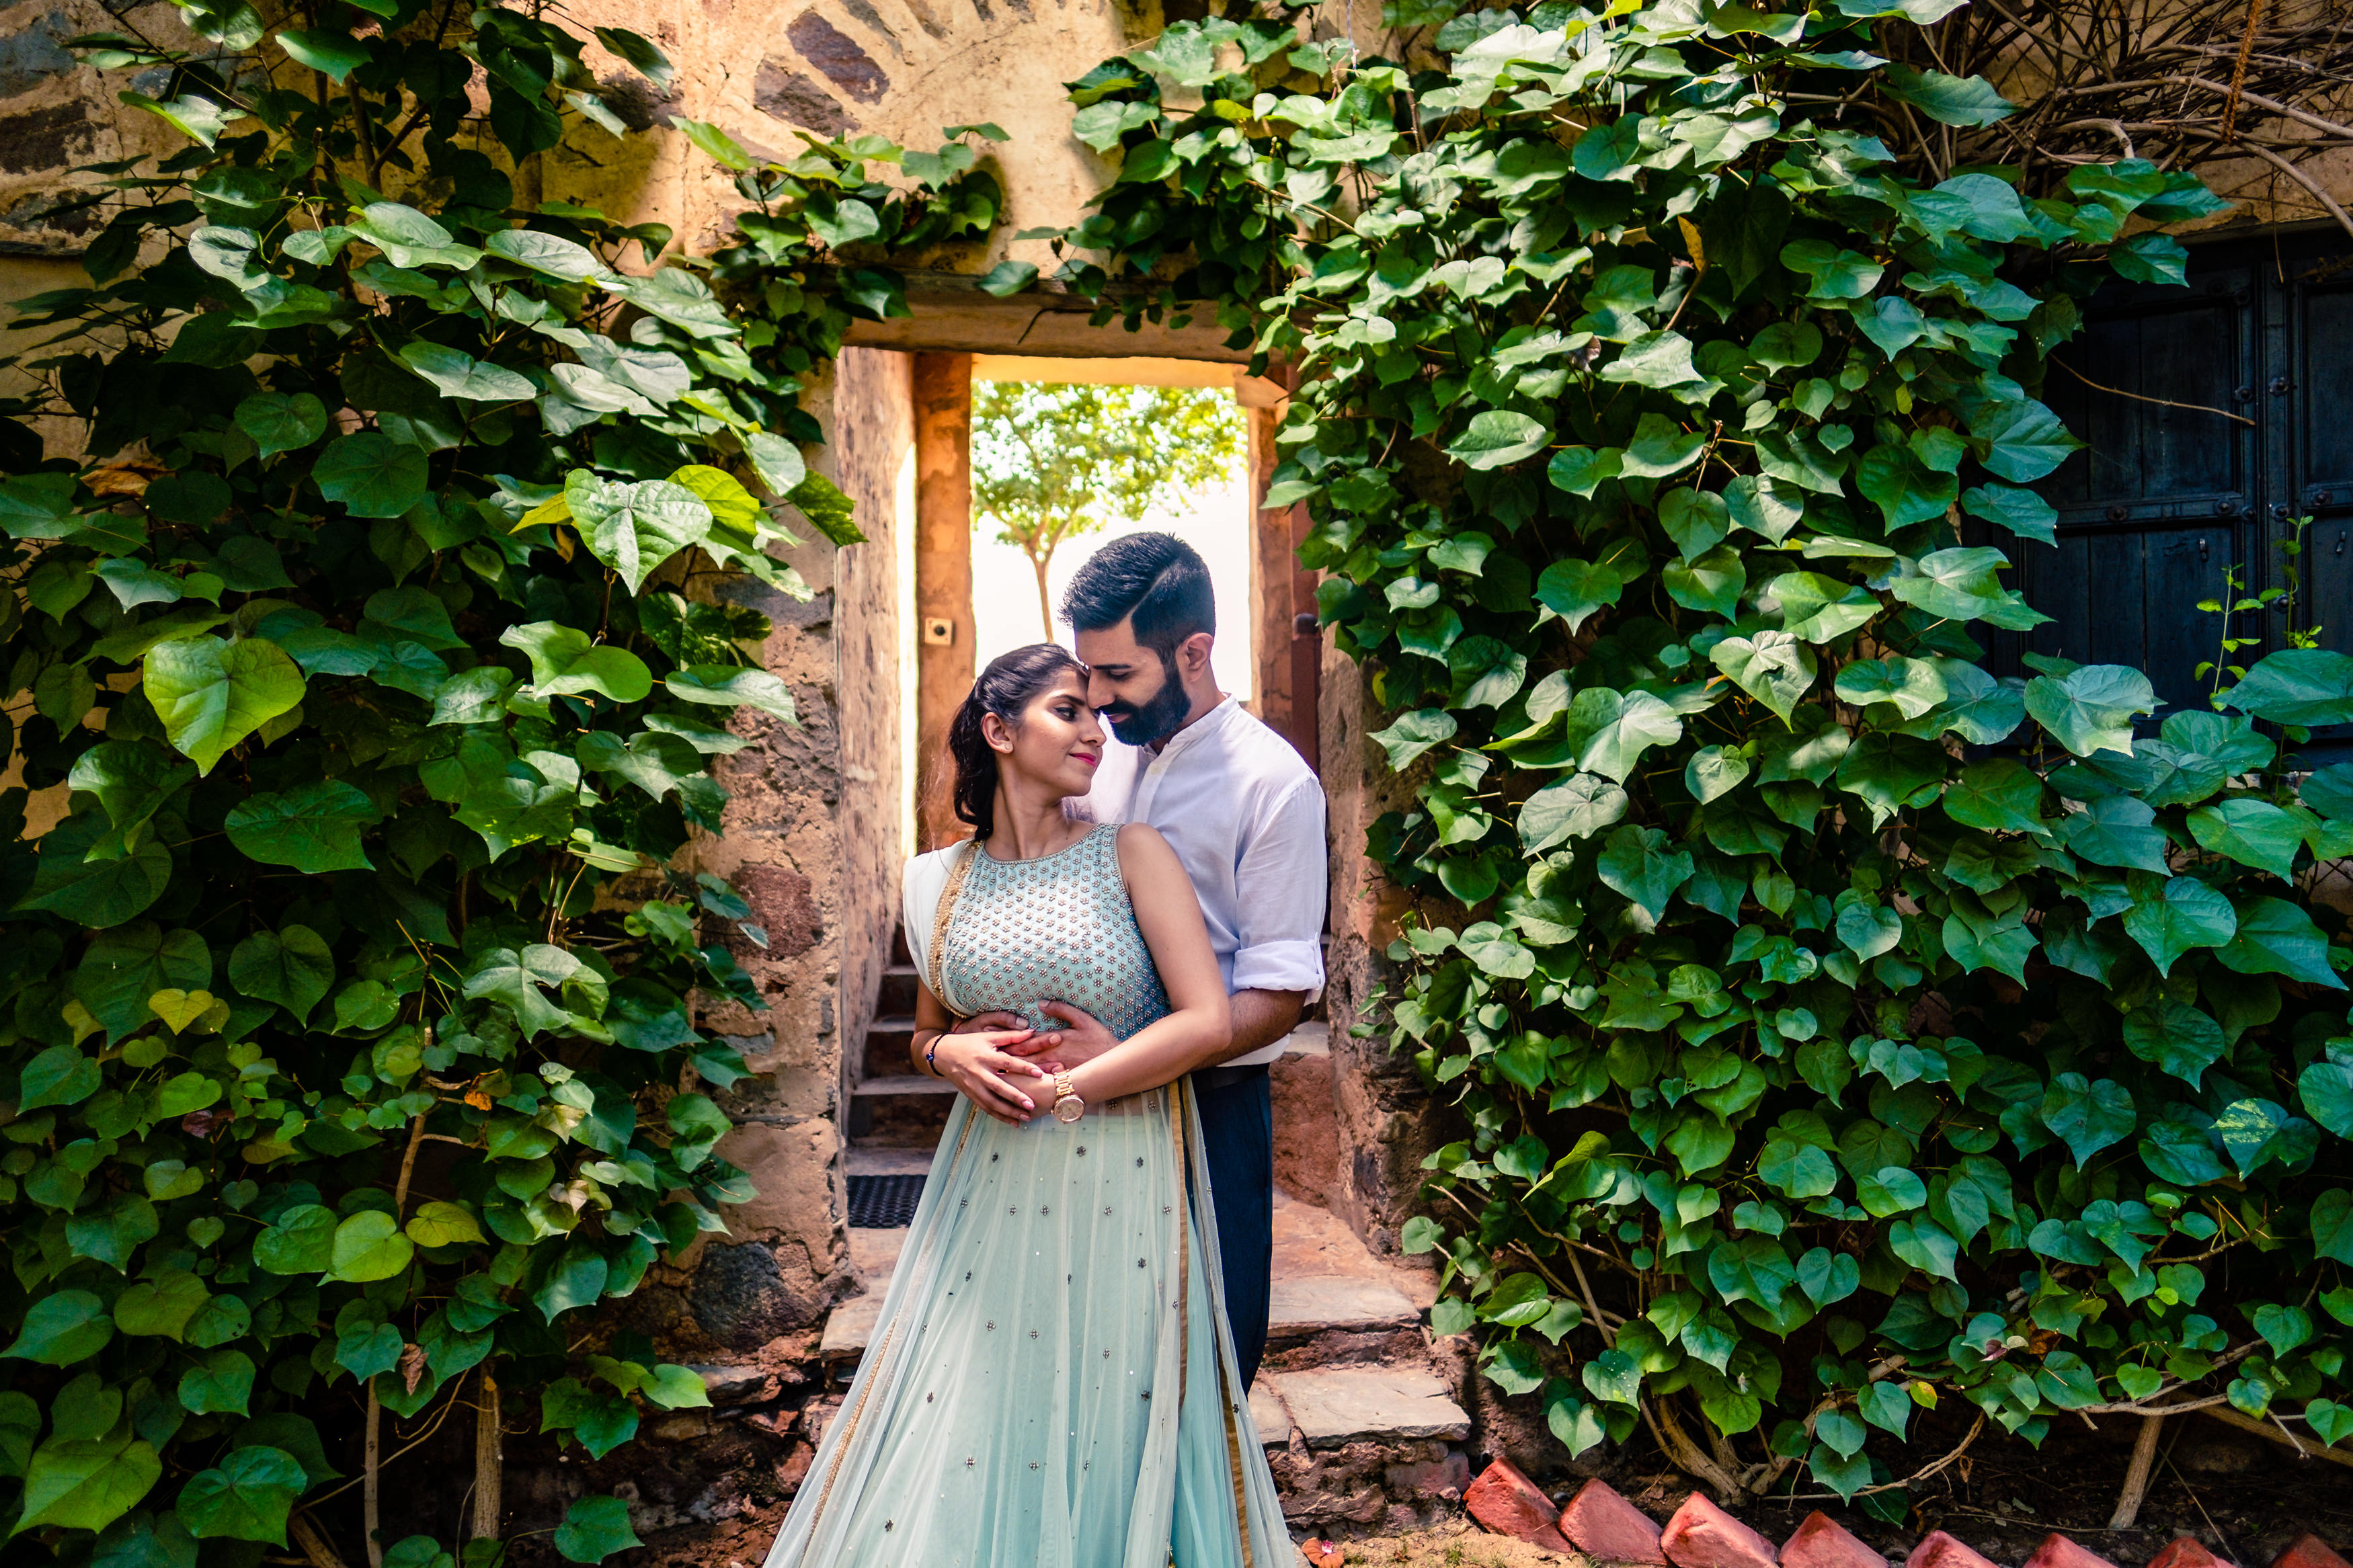 Neemrana pre-wedding couple shoot in India.